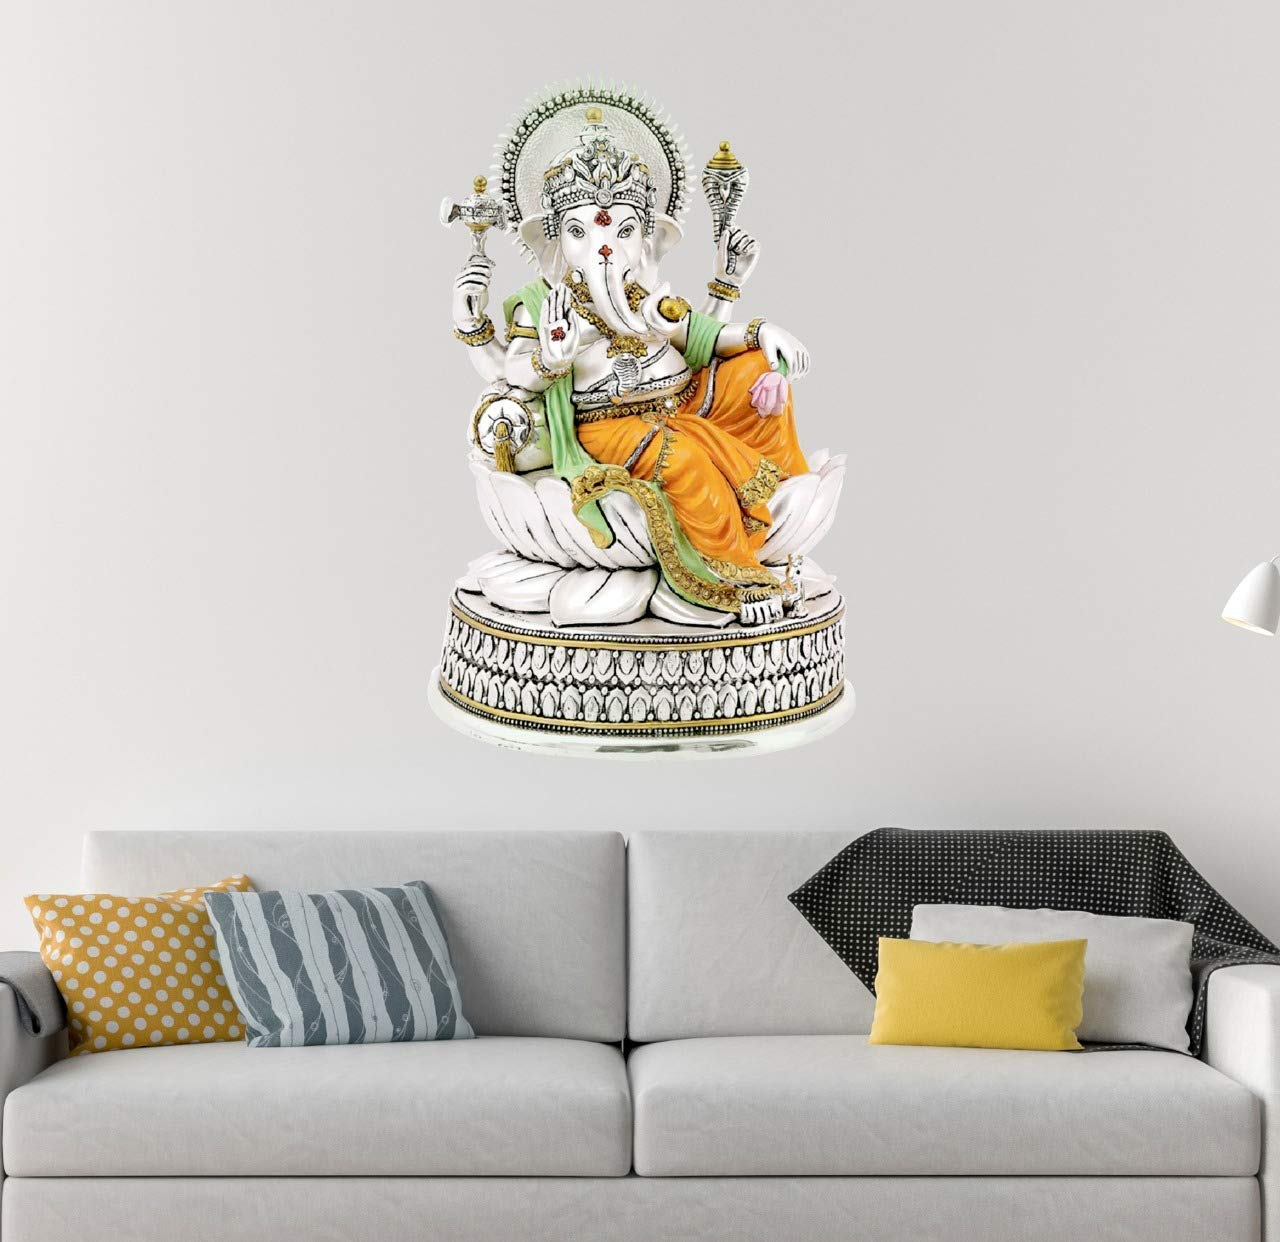 Friends Office Automation Vinyl Lord Ganesha Ganpati Ji Wall Sticker